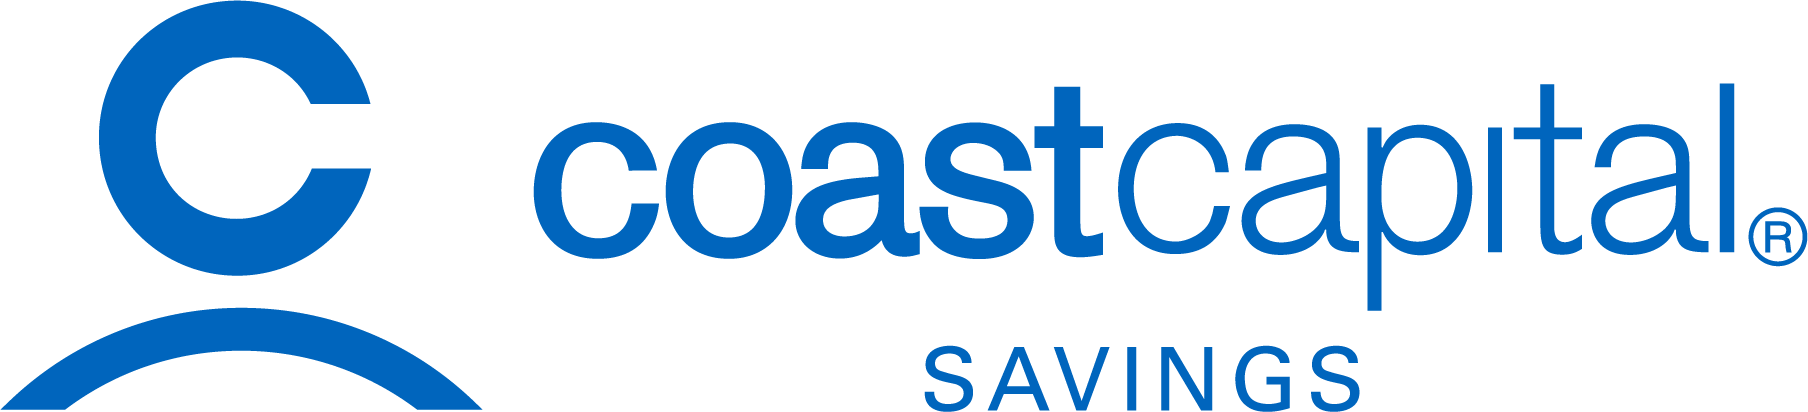 Logo Image for Coast Capital Savings